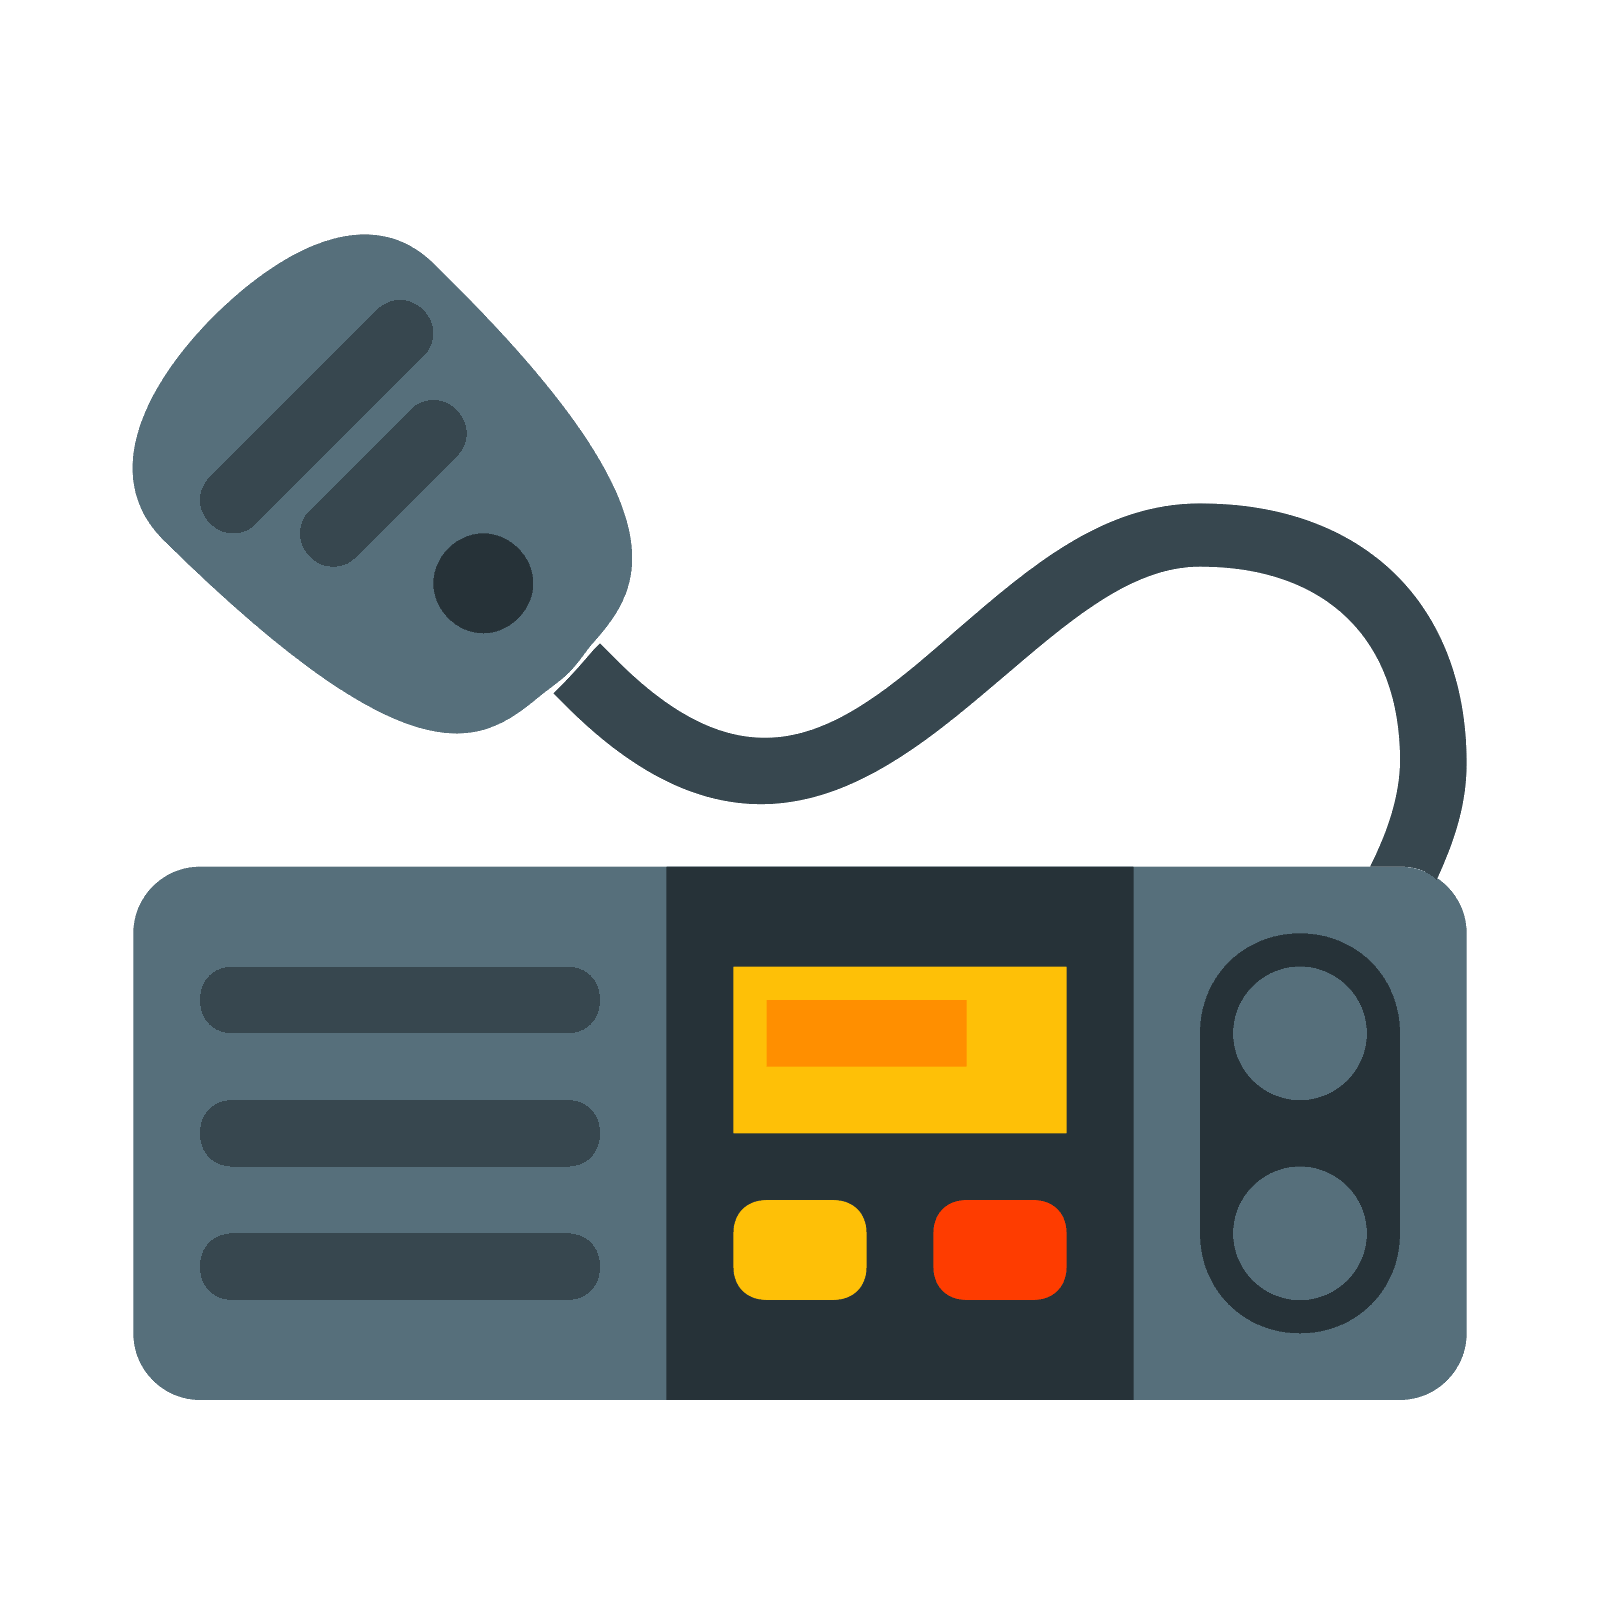 clip art free library Marine radio icono descarga. Vector bundles cable